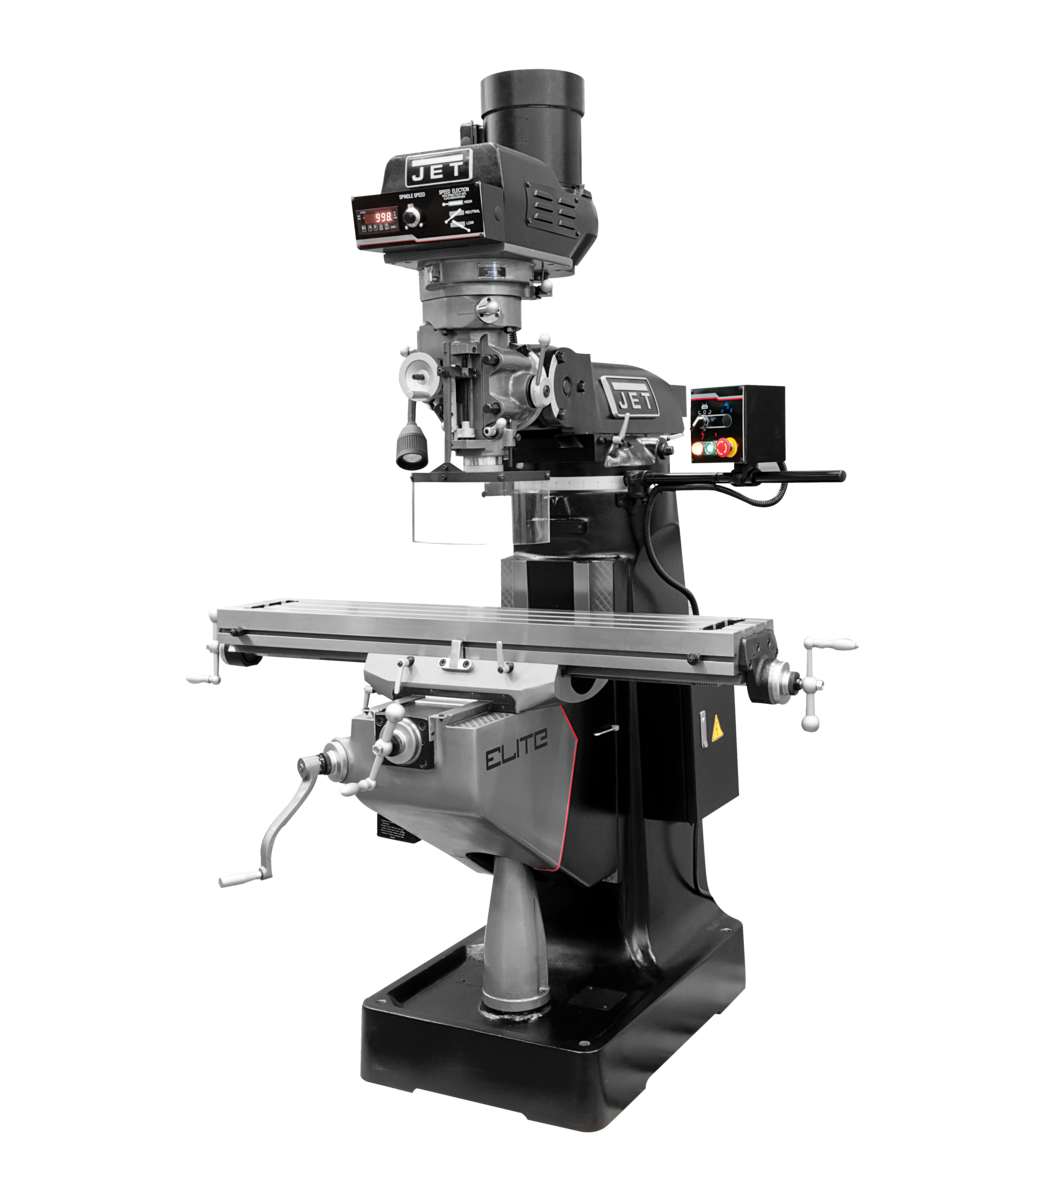 EVS-949 Mill with 3-Axis ACU-RITE 303 (Quill) DRO and Servo X-Axis Powerfeed and USA Air Powered Draw Bar